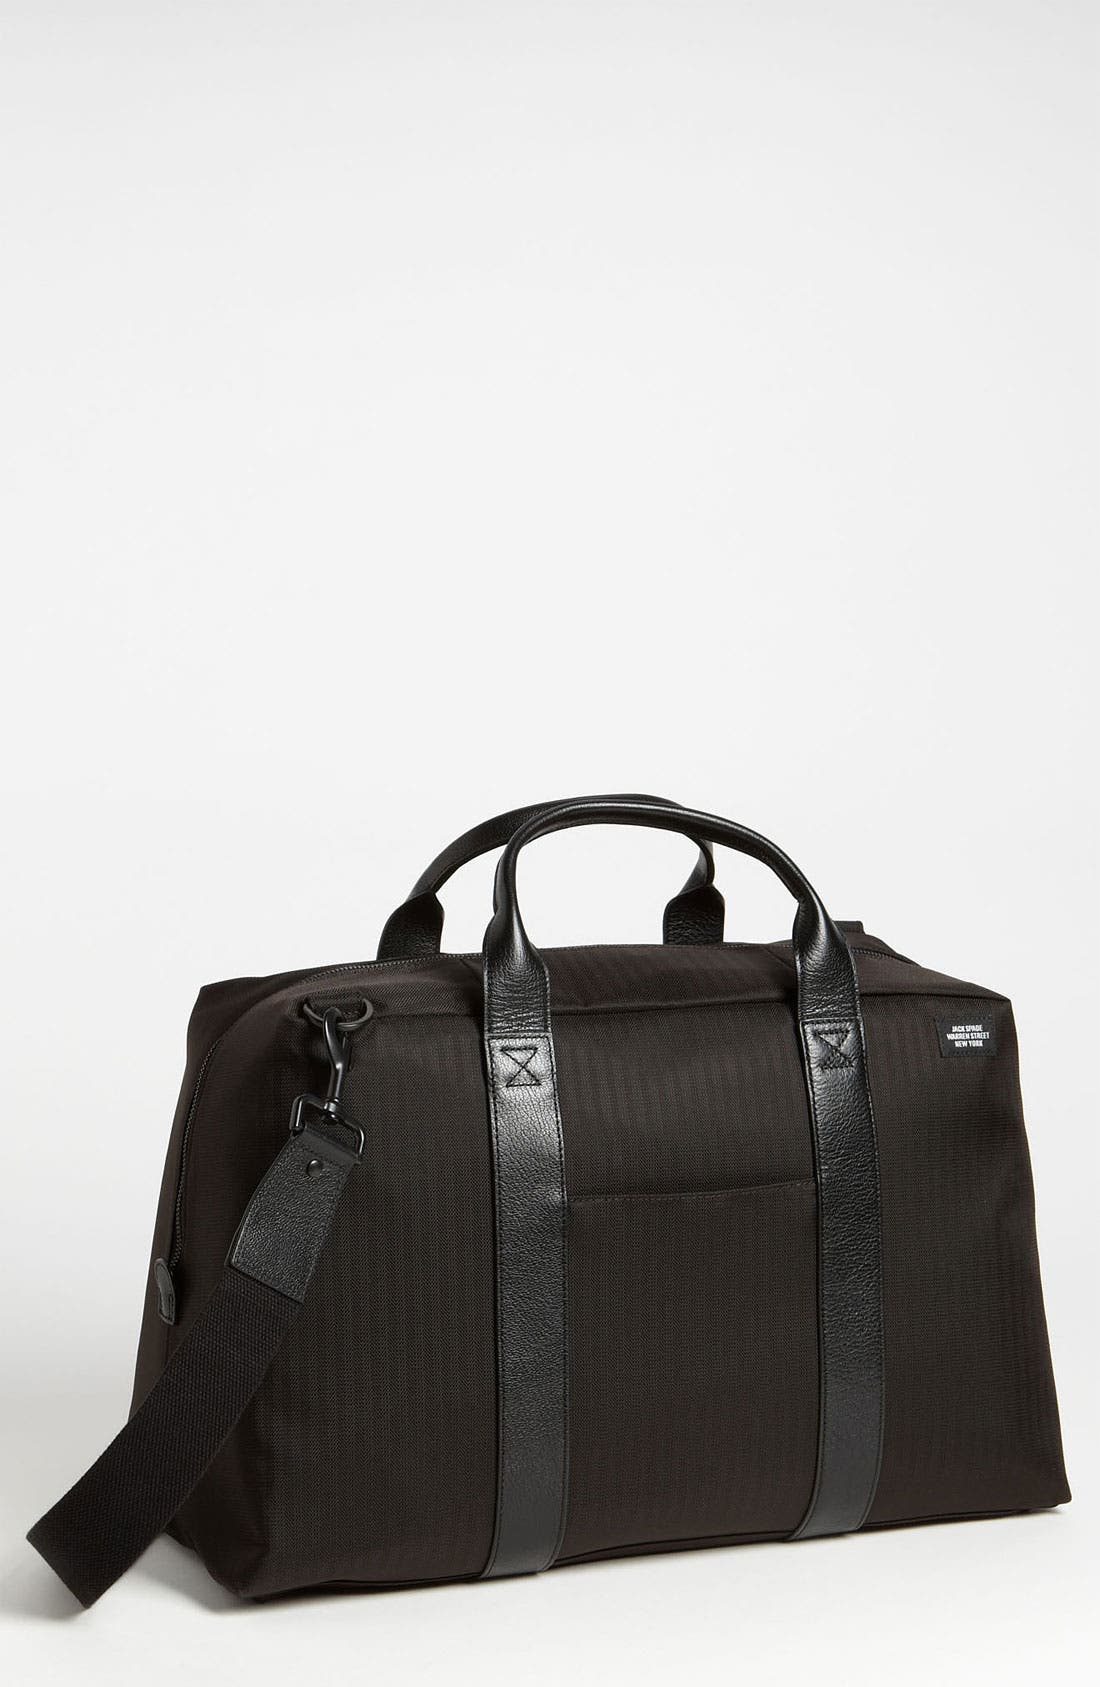 Alternate Image 1 Selected - Jack Spade 'Wayne' Nylon Duffel Bag